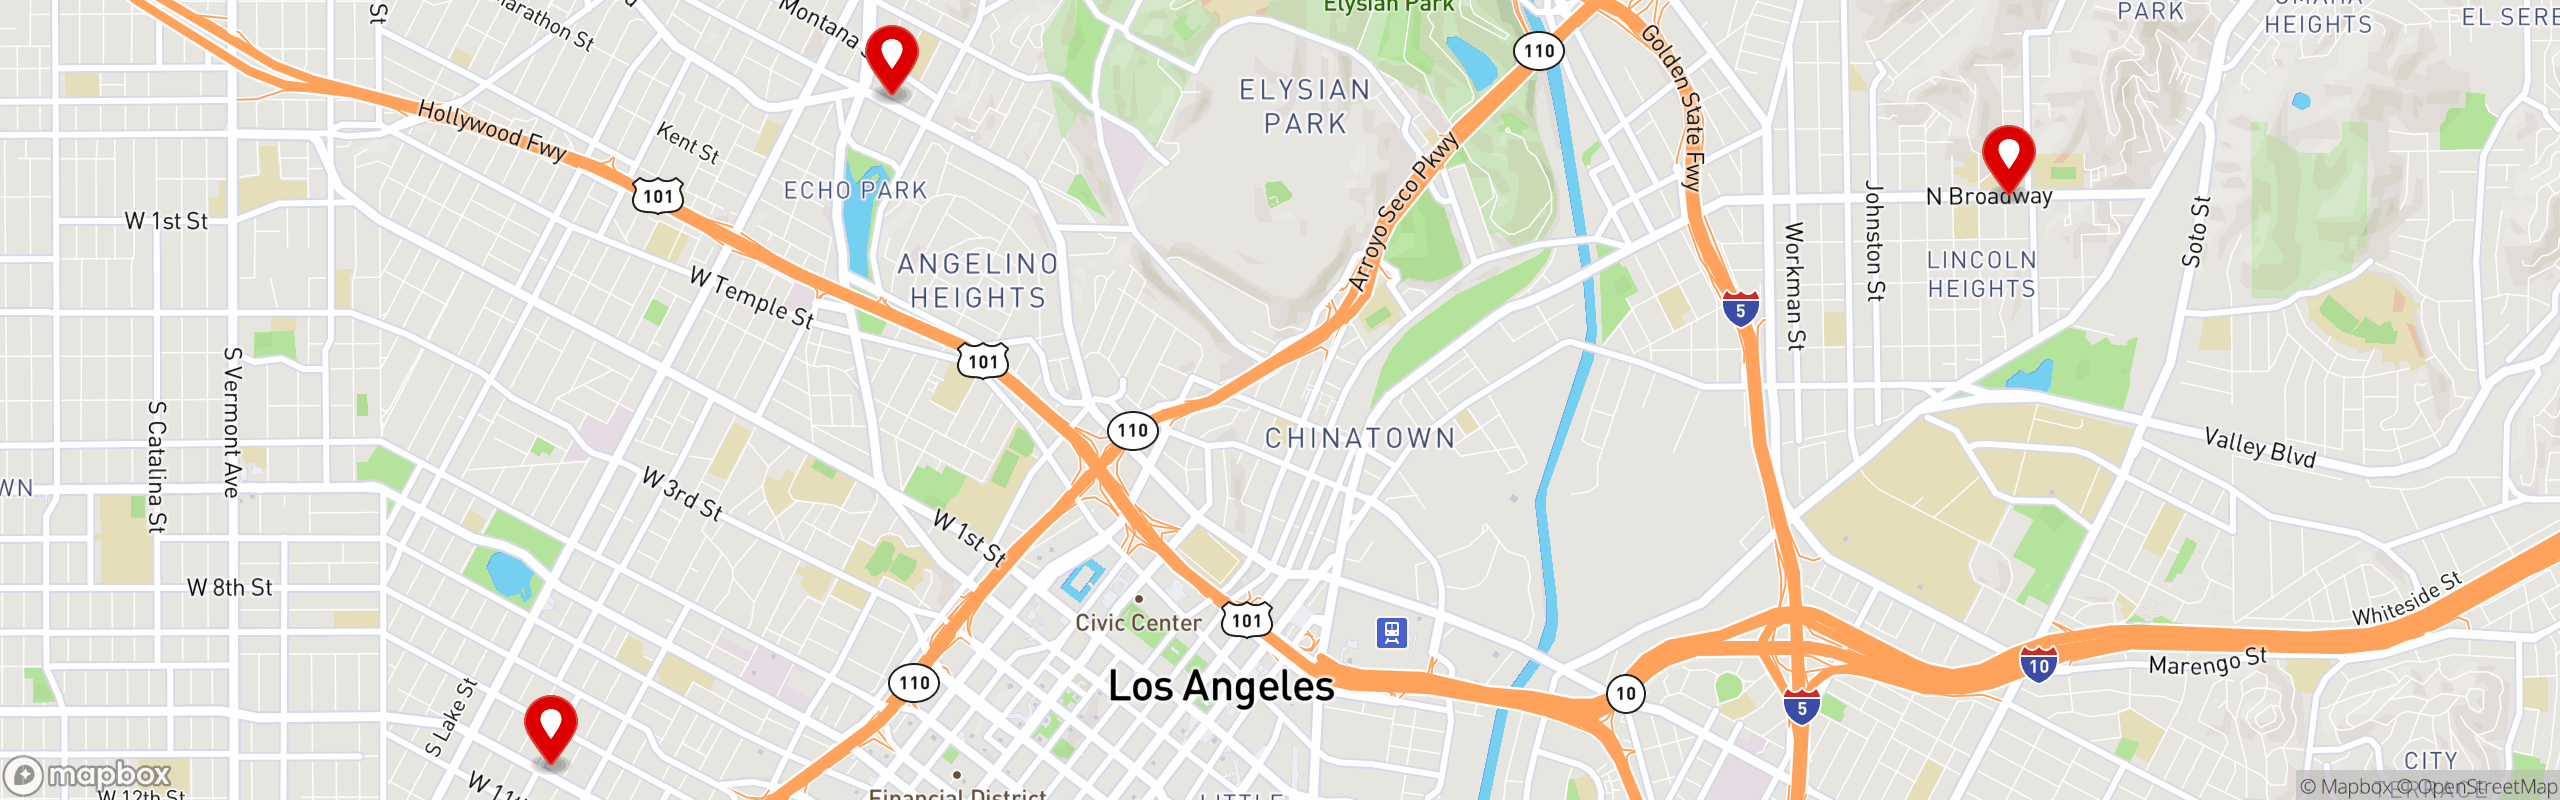 Map of restaurant locations